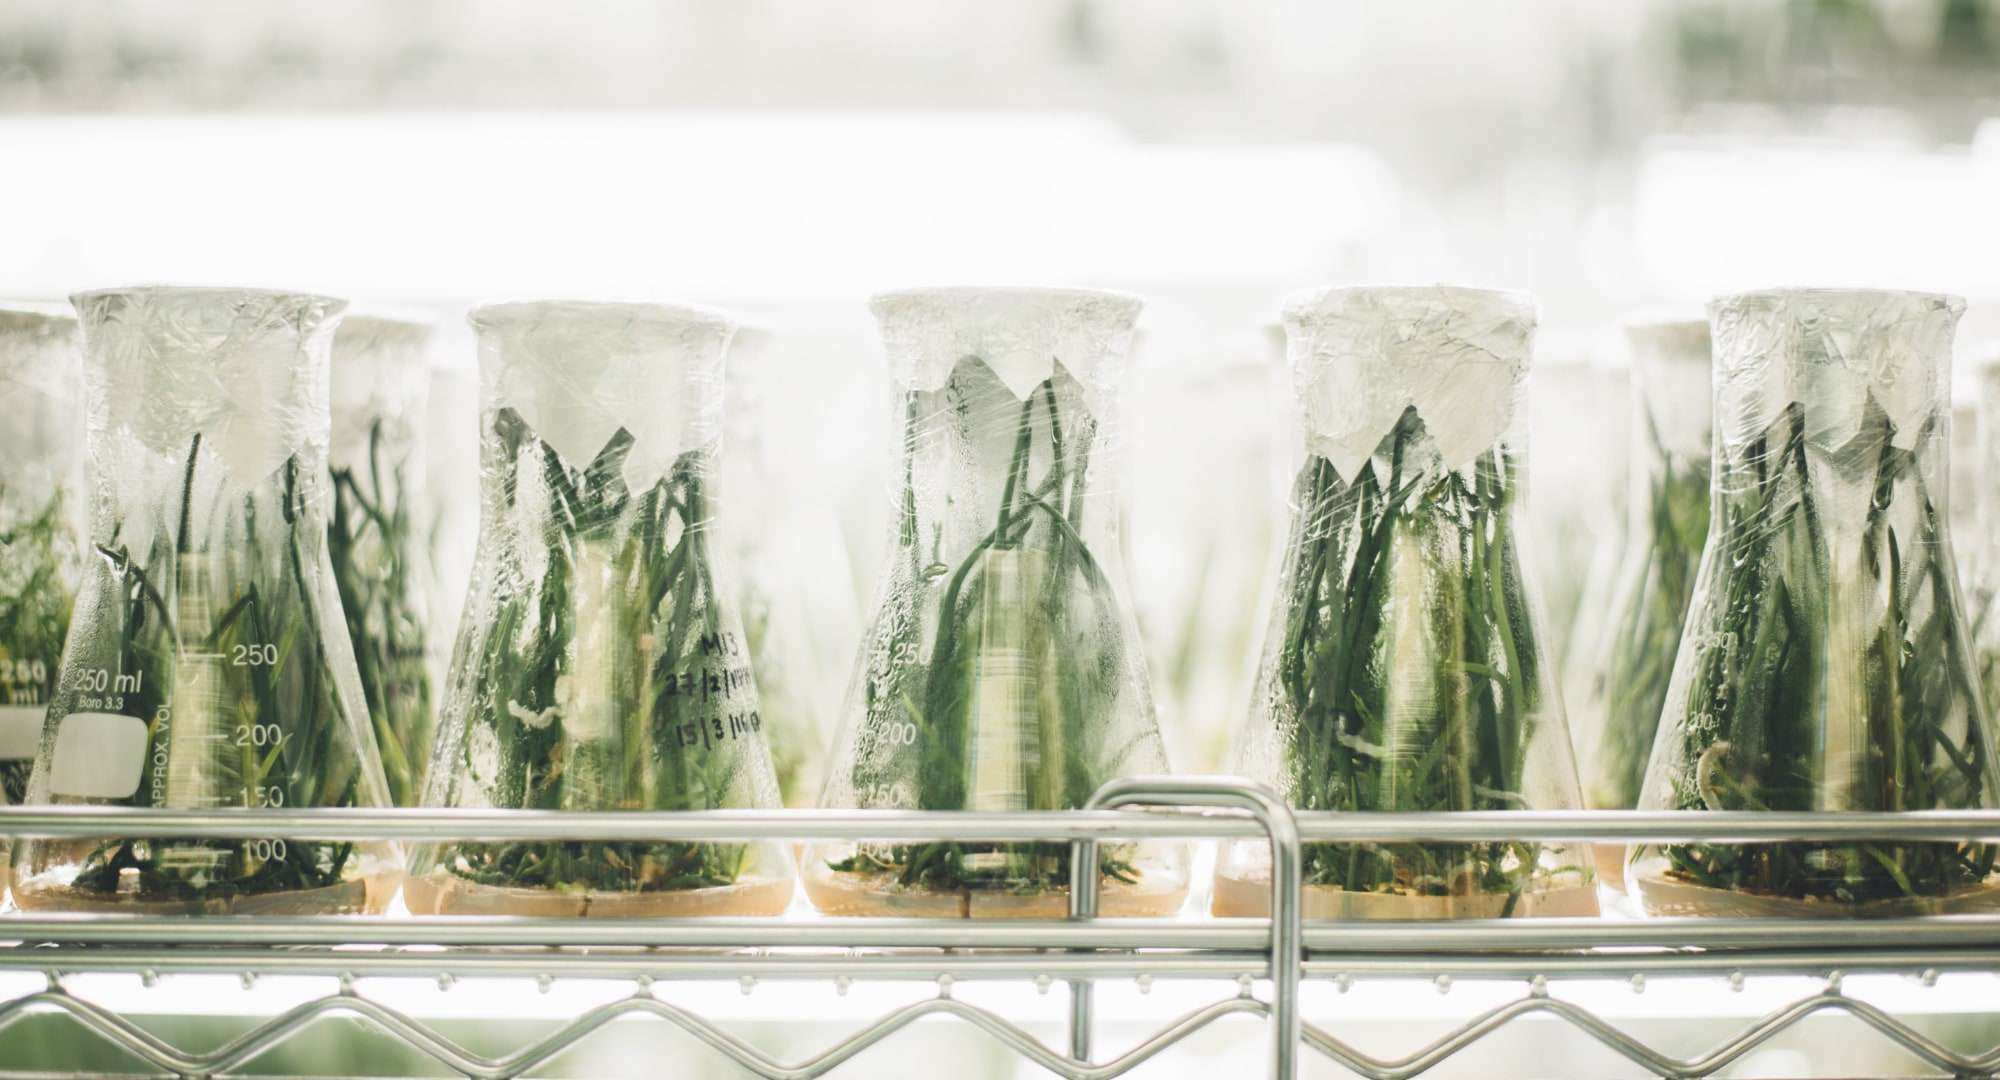 Aquatic plants in a laboratory